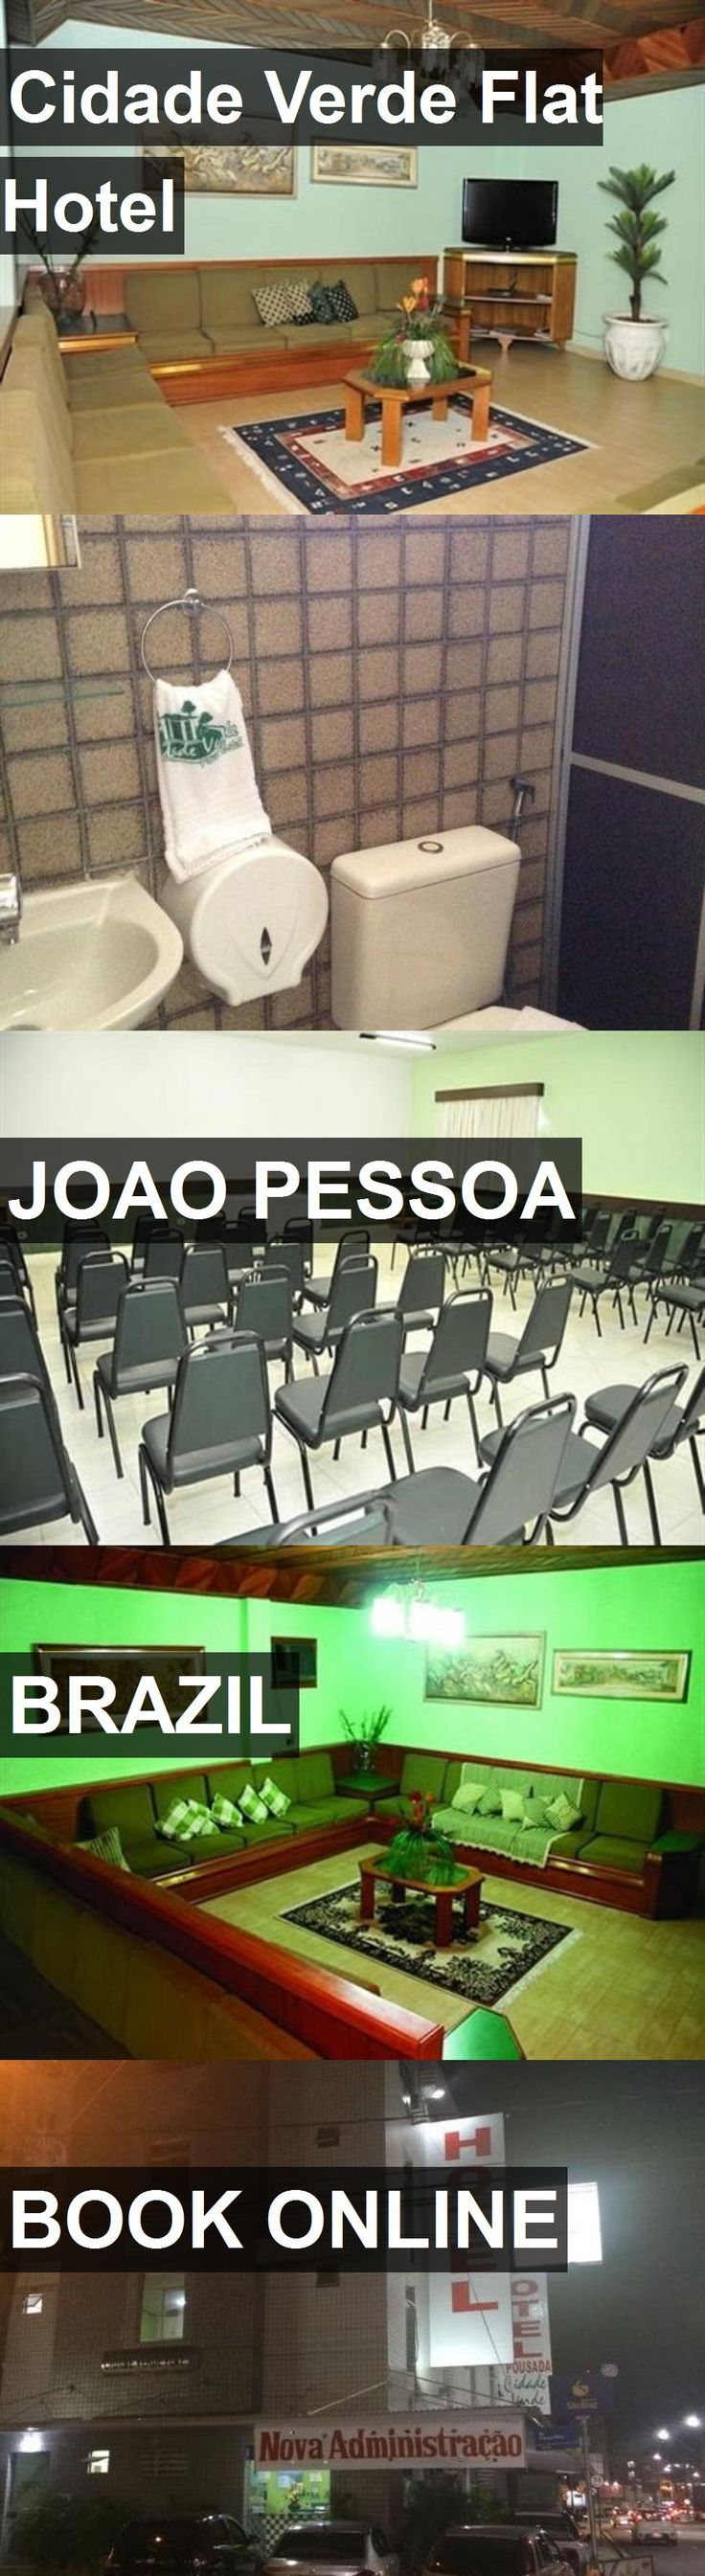 Hotel Cidade Verde Flat Hotel in Joao Pessoa, Brazil. For more information, photos, reviews and best prices please follow the link. #Brazil #JoaoPessoa #hotel #travel #vacation